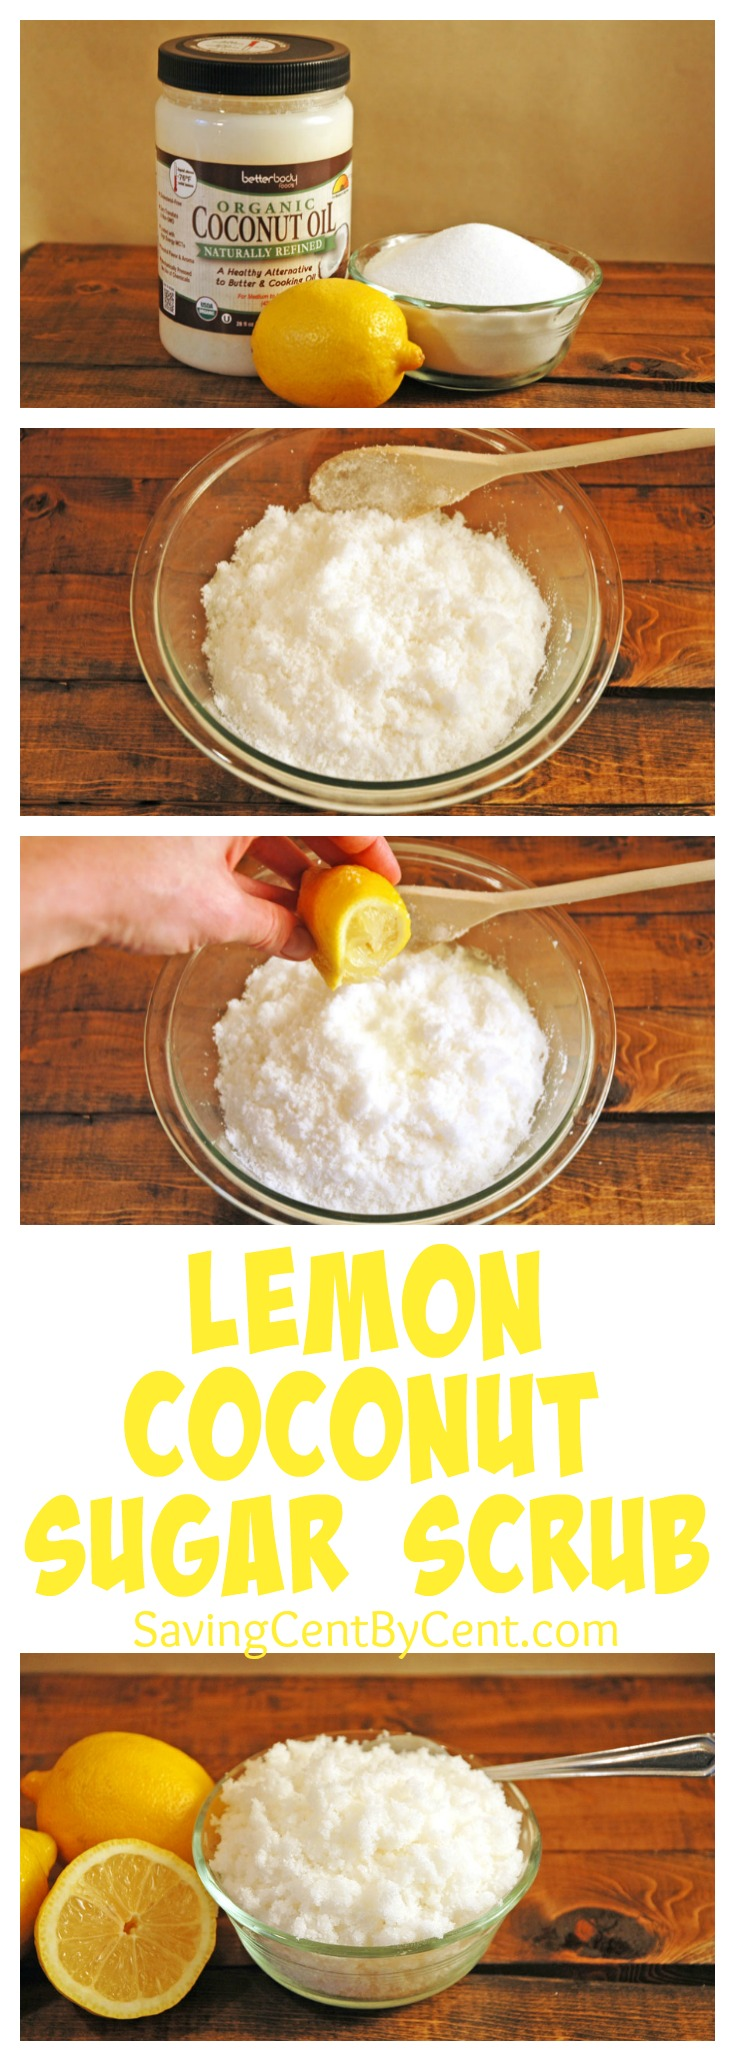 Homemade Lemon Coconut Sugar Scrub